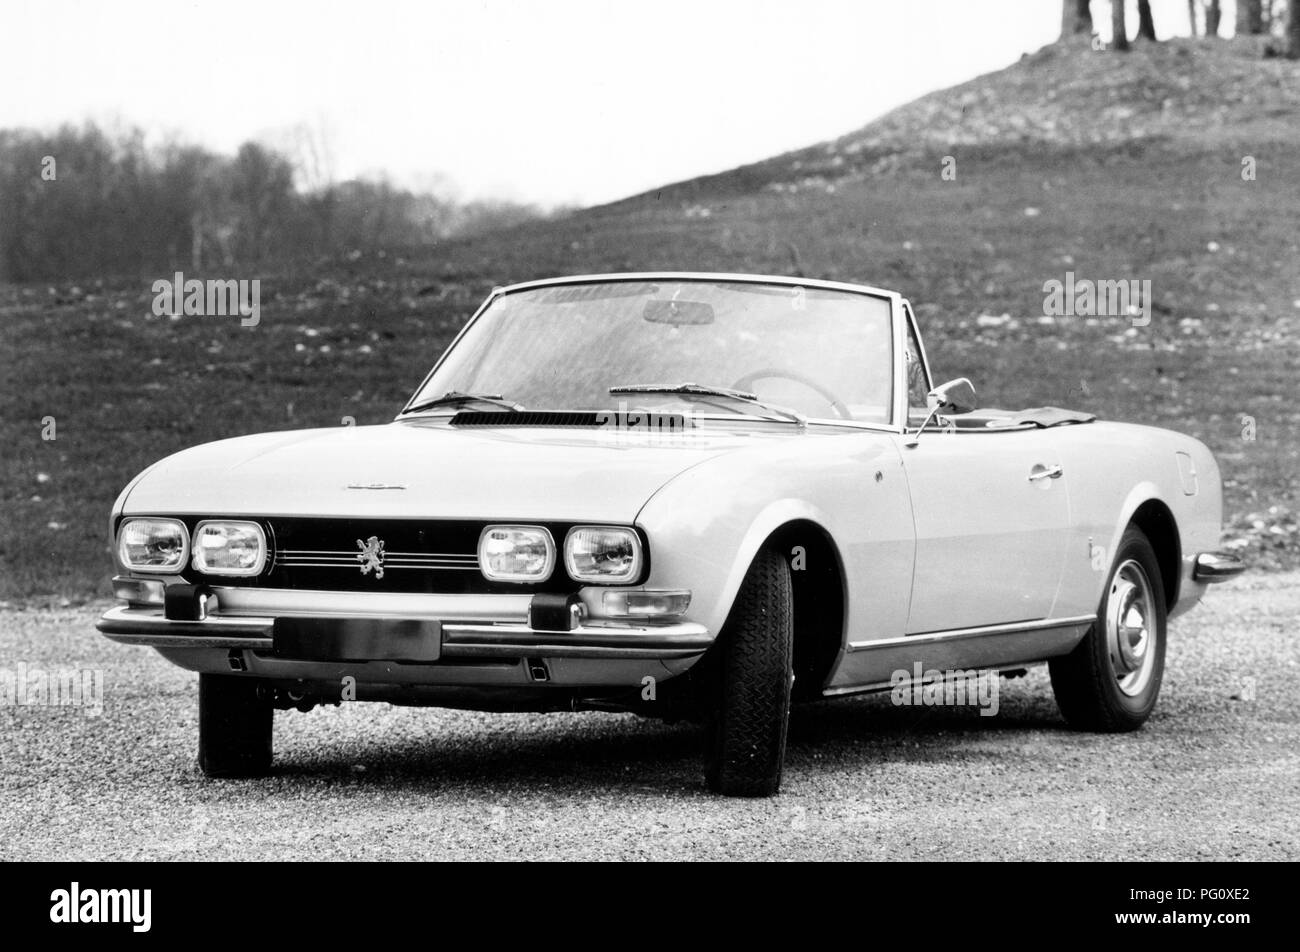 1969 Peugeot 504 Cabriolet Stock Photo Alamy